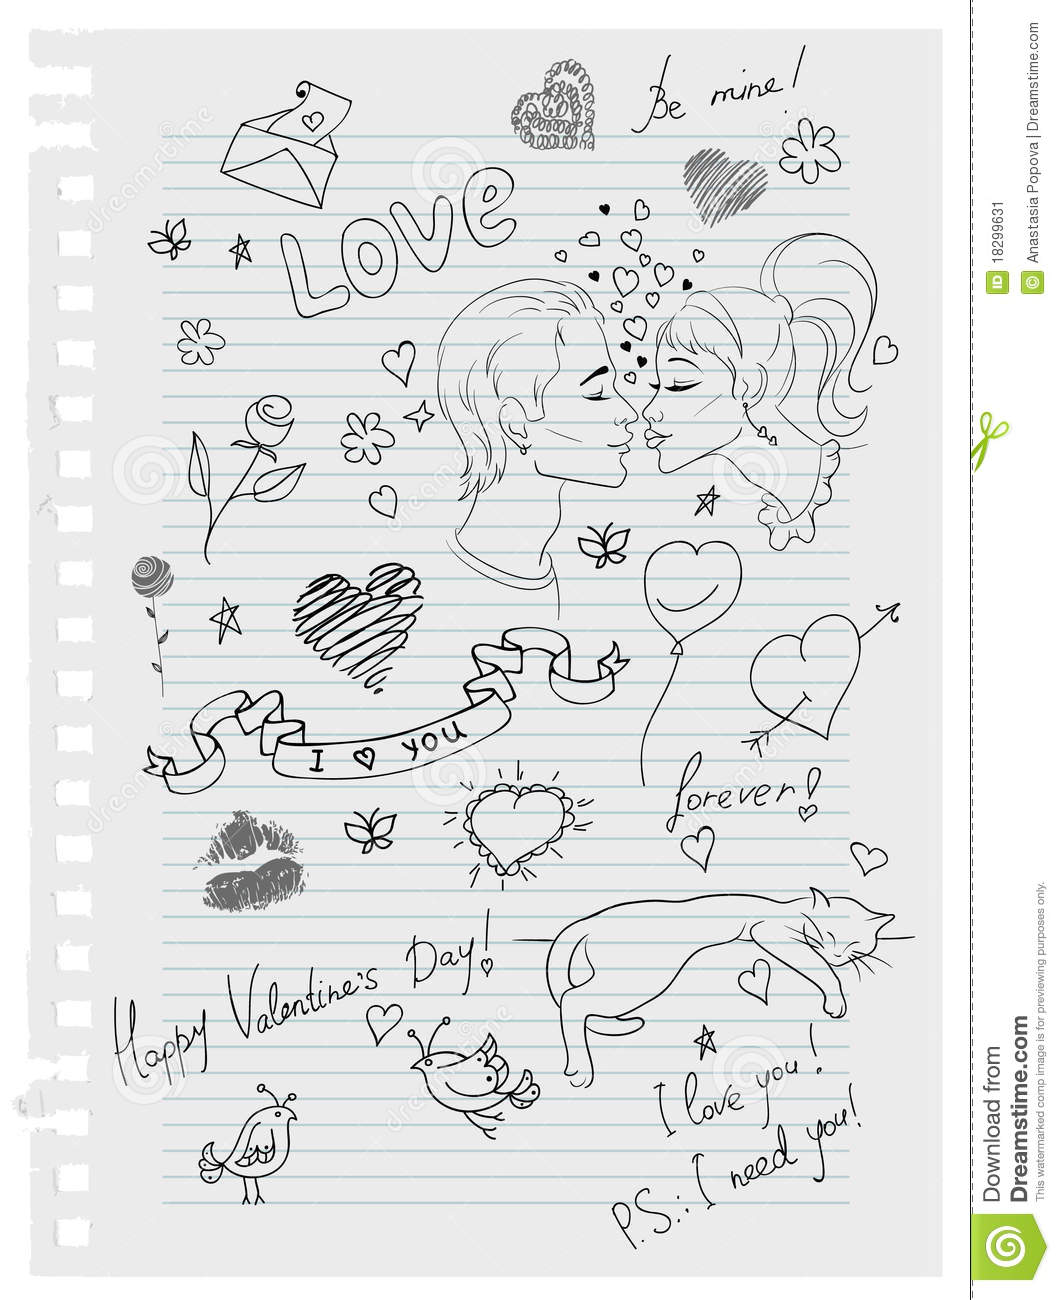 Hand-drawn Love Doodles Stock Vector. Illustration Of